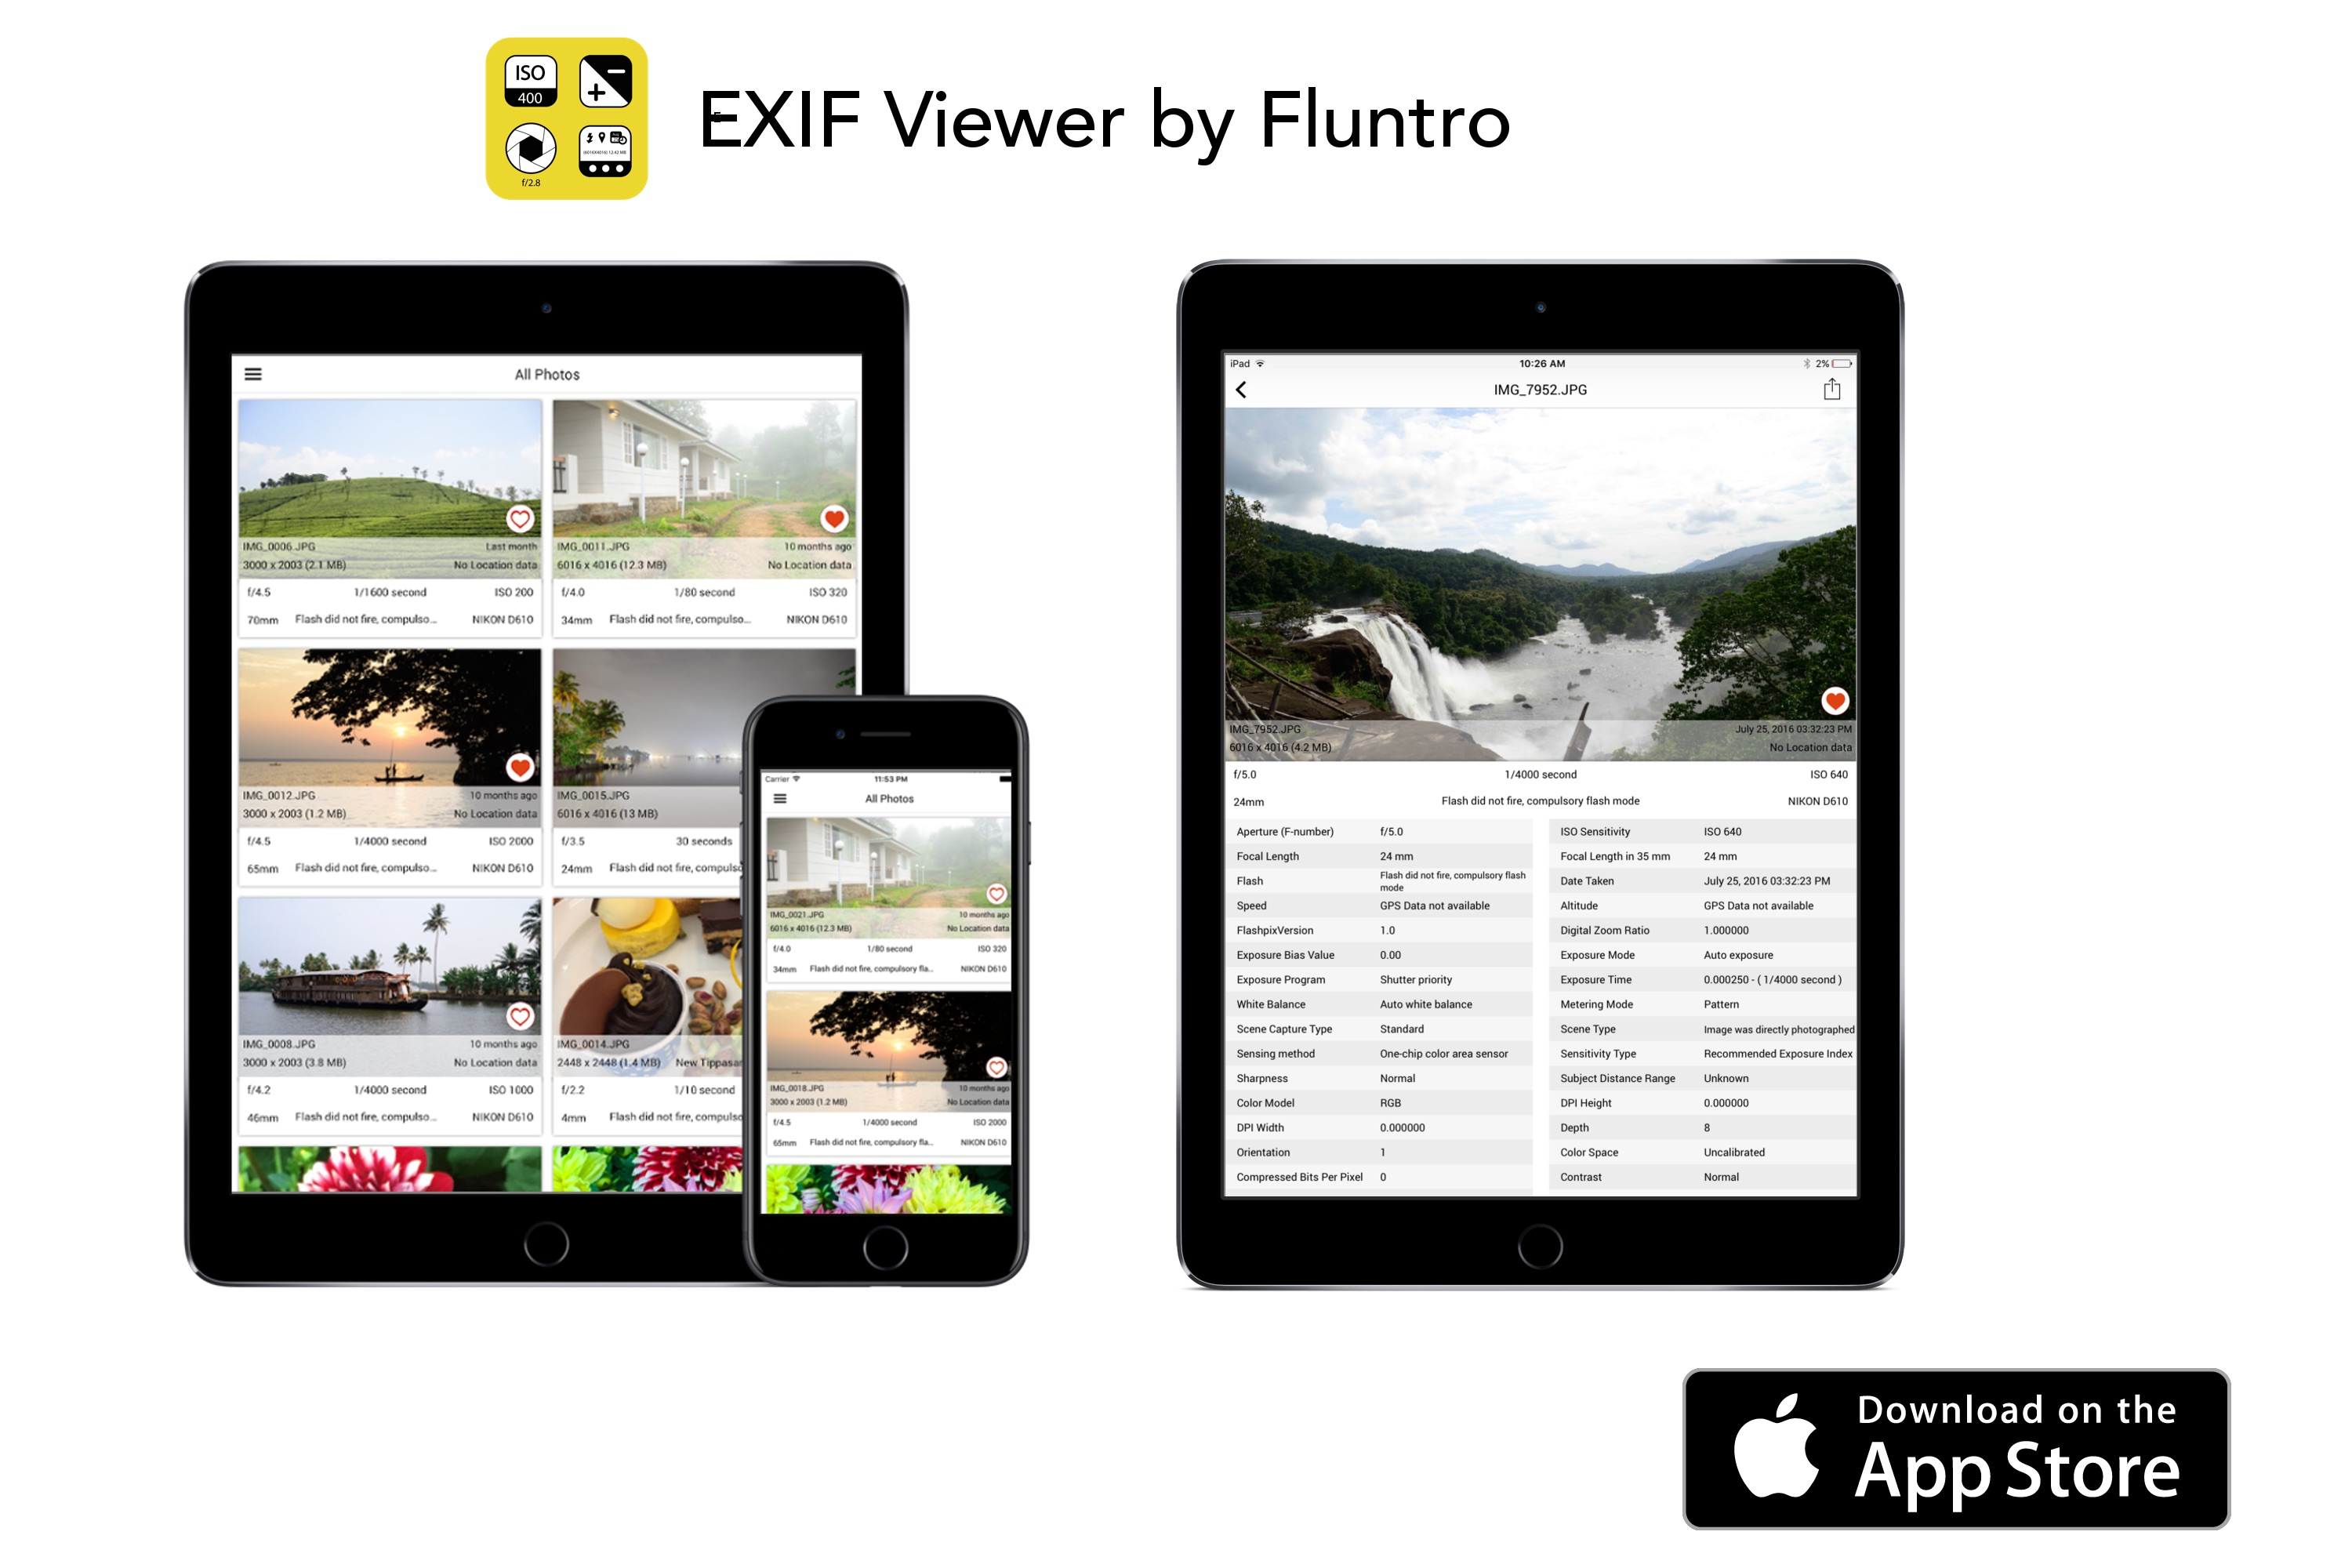 Exif Viewer by Fluntro is now ranking in top charts on iOS App Store Image